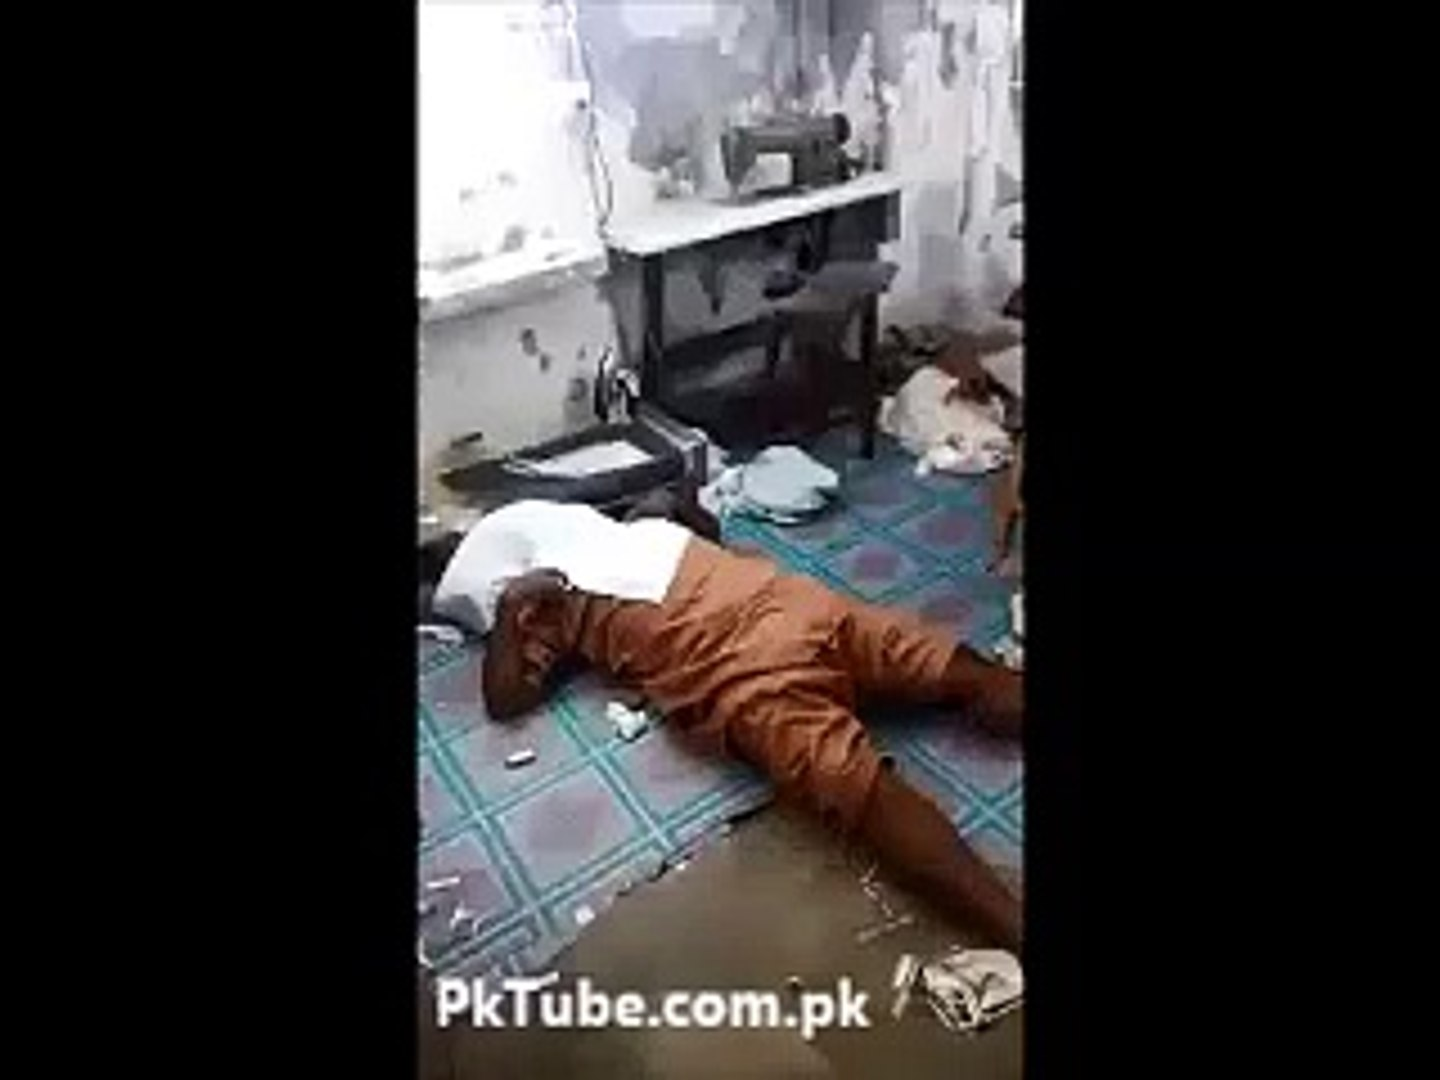 Funny Prank with Sleeping Boy